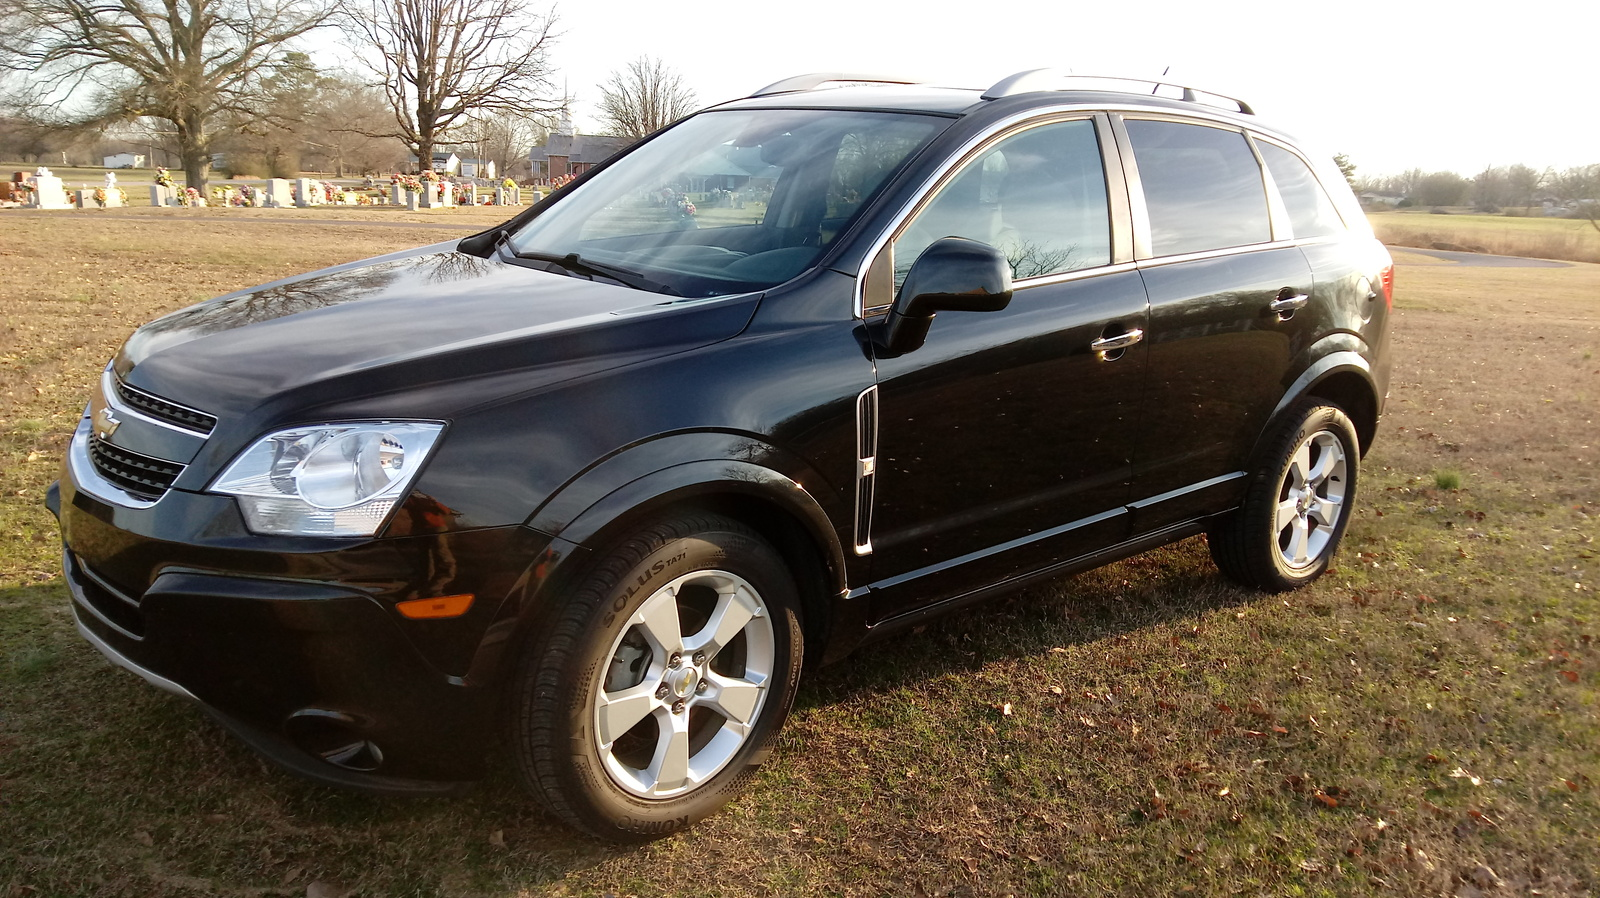 2013 chevrolet captiva sport overview cargurus. Black Bedroom Furniture Sets. Home Design Ideas